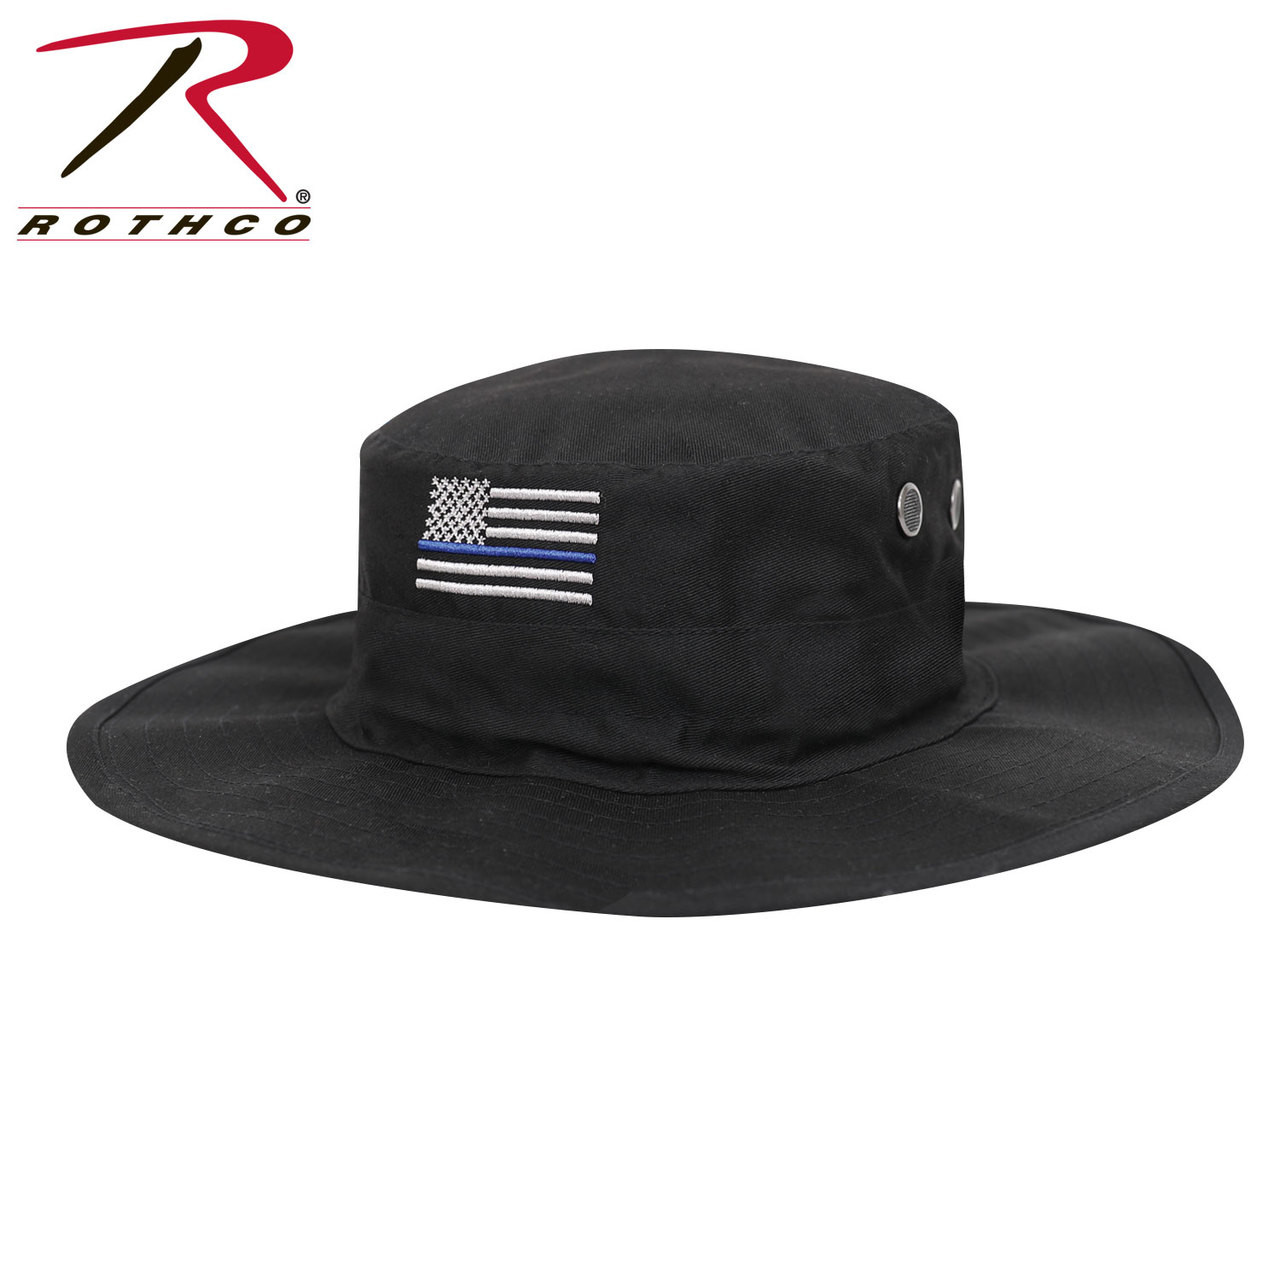 Rothco Thin Blue Line Adjustable Boonie Hat - Hero Outdoors 9e47bd11d76